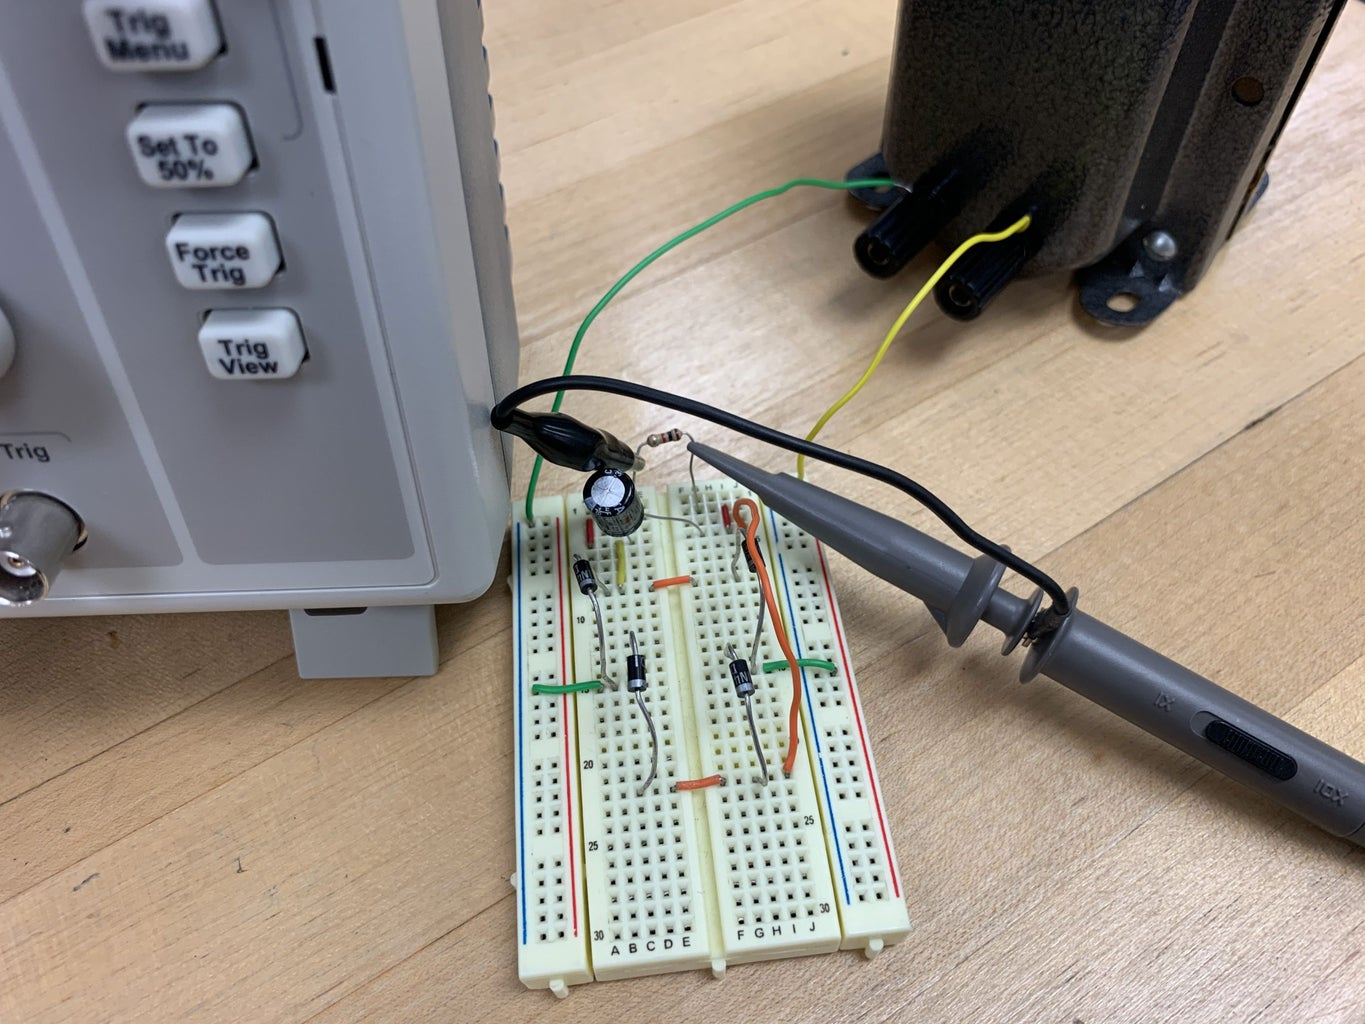 Connect the Breadboard to the Transformer